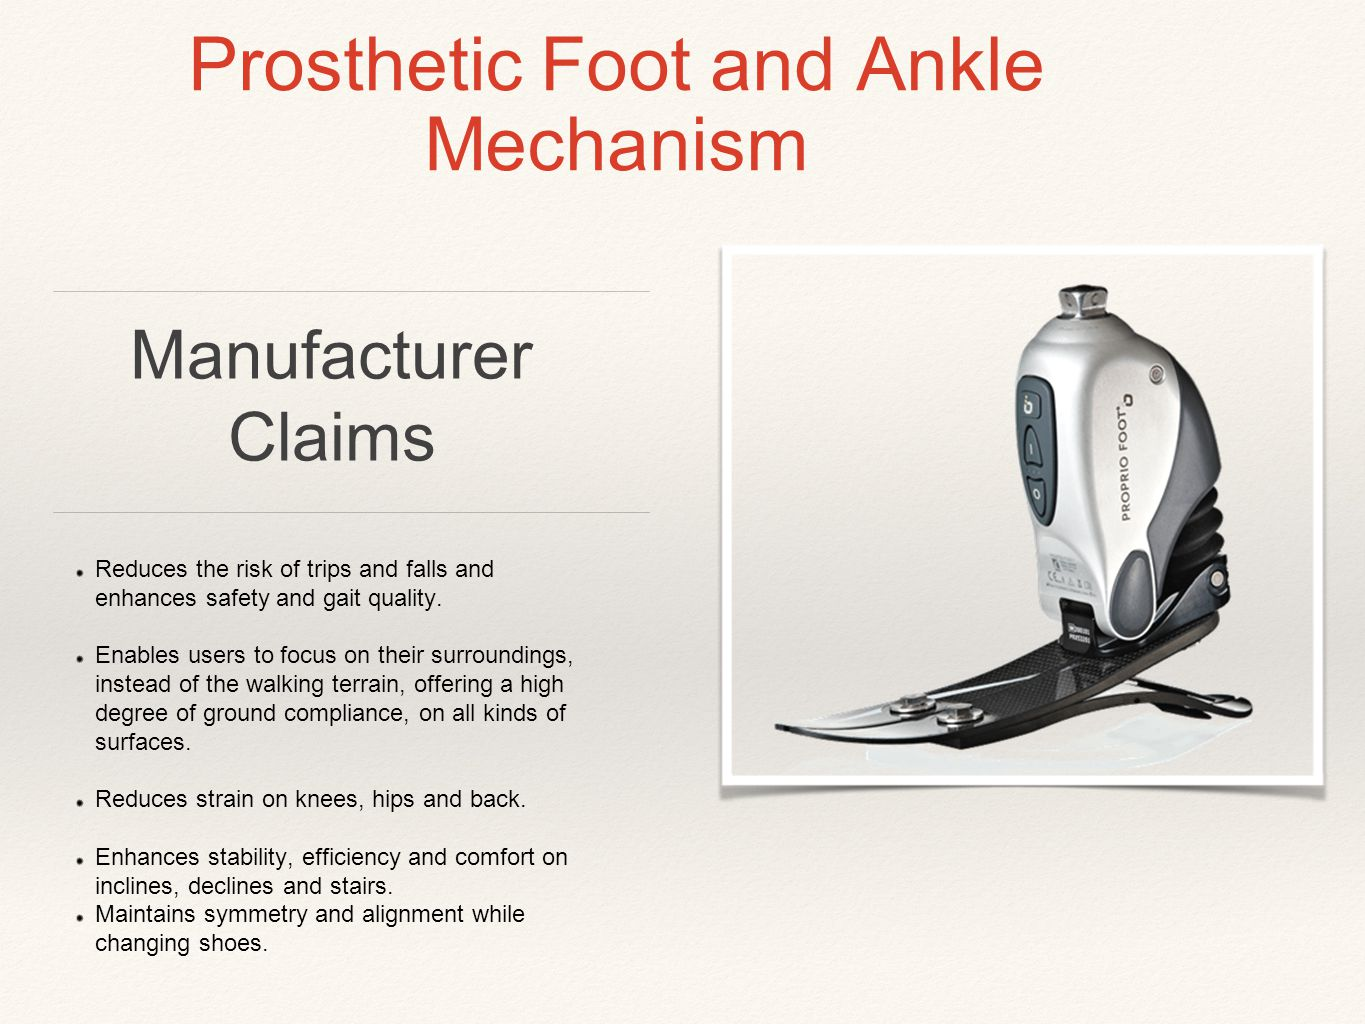 Prosthetic Foot and Ankle Mechanism Reduces the risk of trips and falls and enhances safety and gait quality.